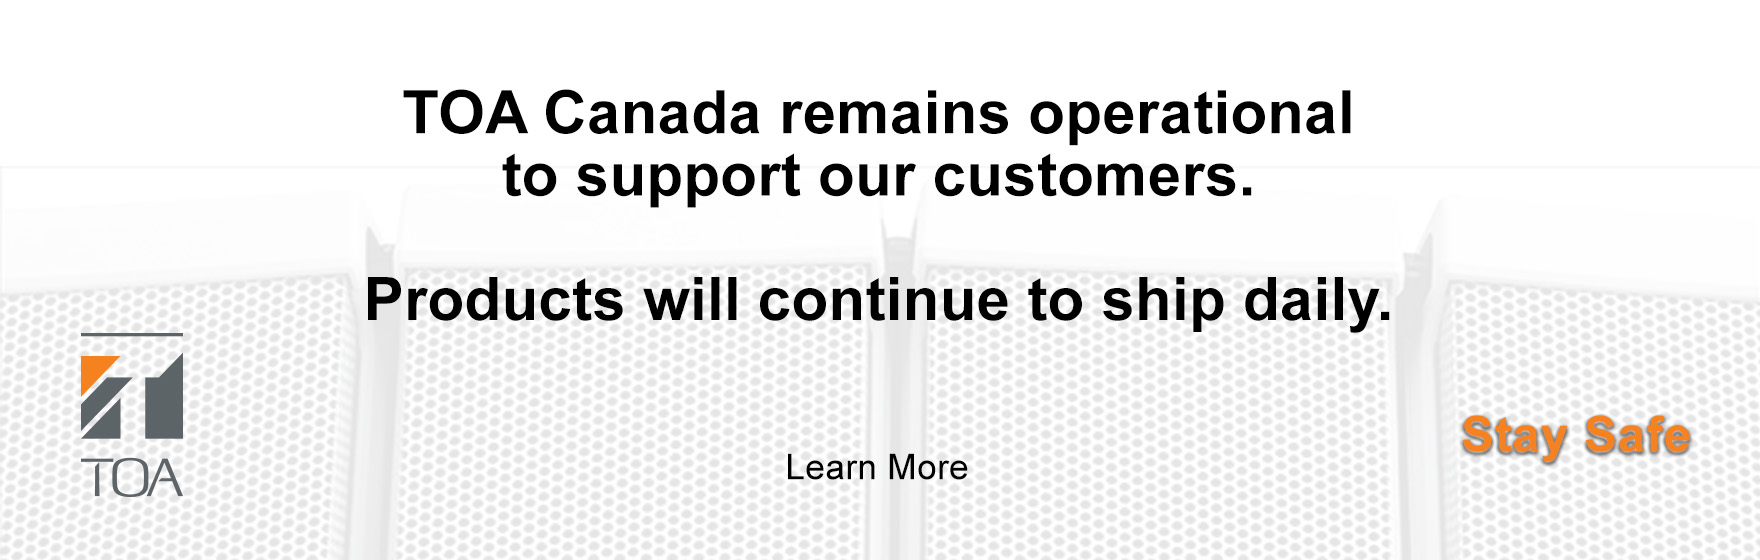 TOA canada, open, business, mississauga, ontario, closed, covid